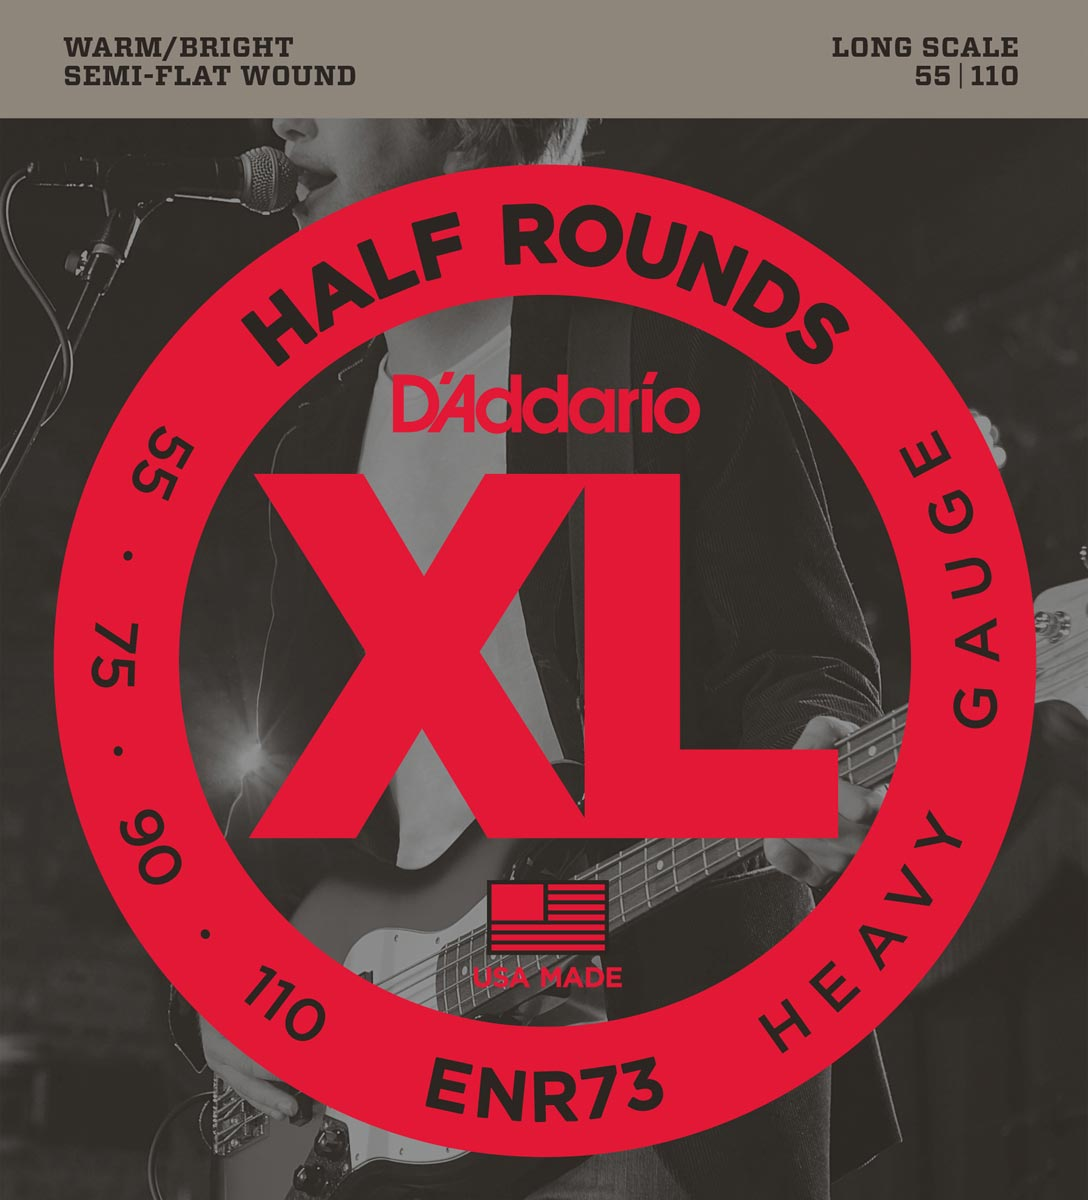 DADDARIO ENR73 HALF ROUNDS HEAVY [55-110] LONG SCALE